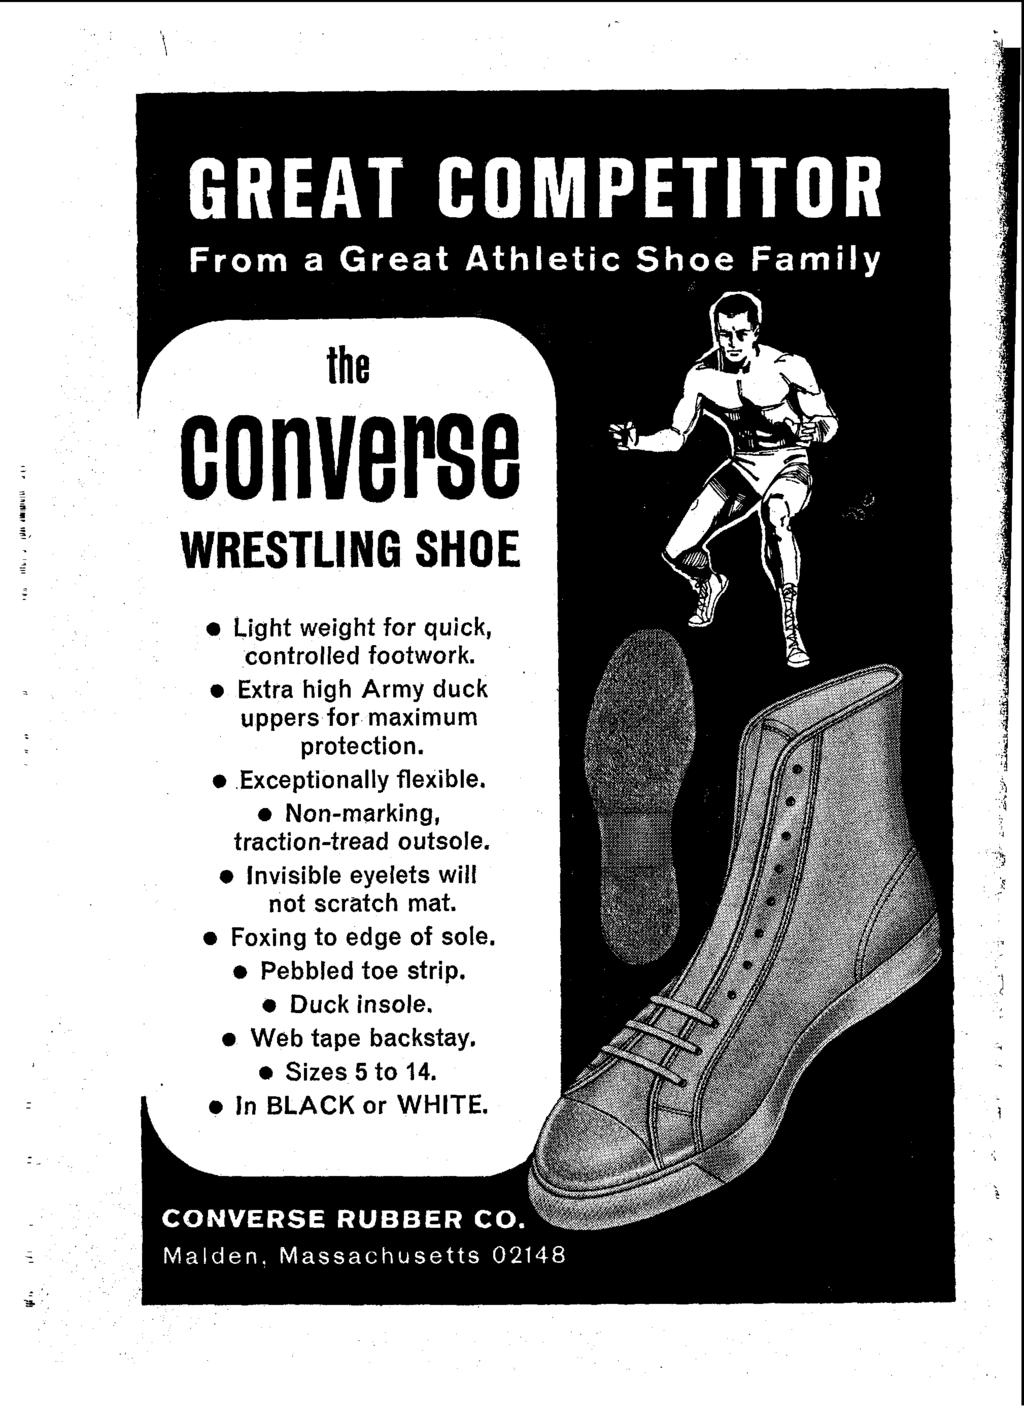 converse WRESTLING SHOE & Light weight for quick, controlled footwork. 0 Extra high Army duck uppers for maximum protection. 0 Exceptionally flexible.